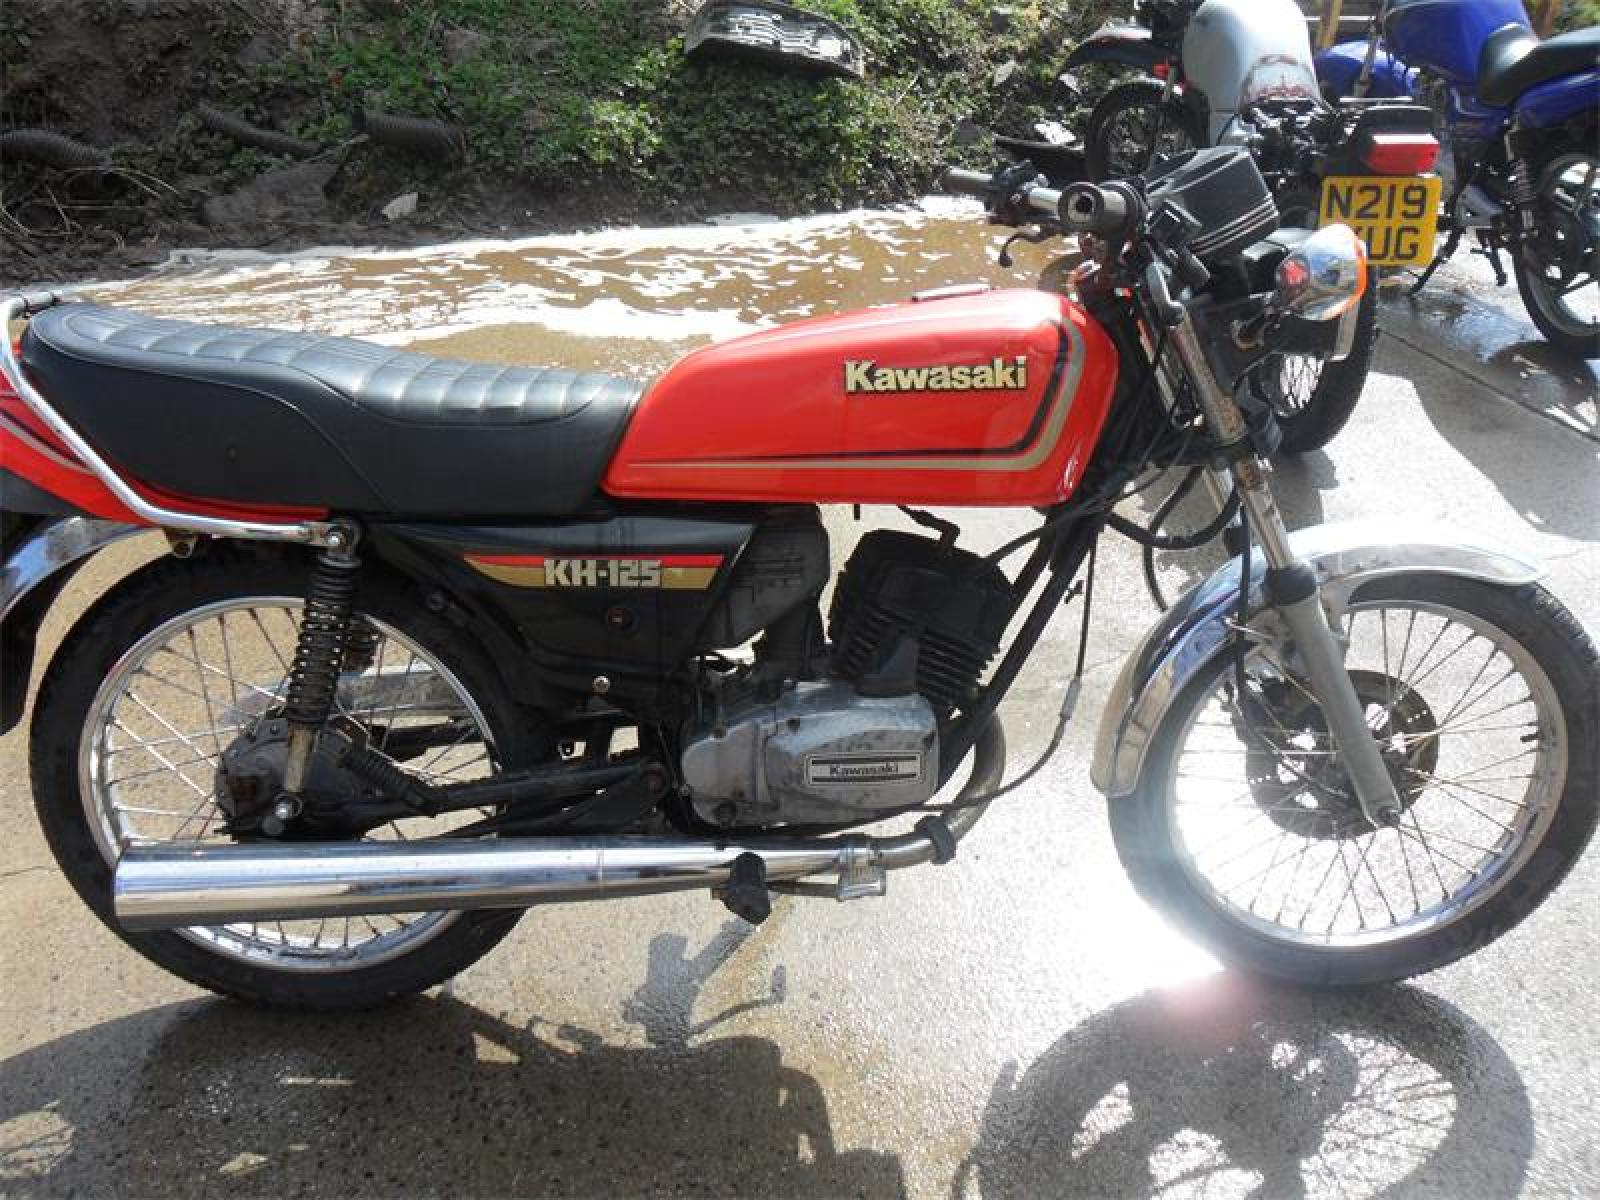 kawasaki kh 125 pics specs and list of seriess by year. Black Bedroom Furniture Sets. Home Design Ideas